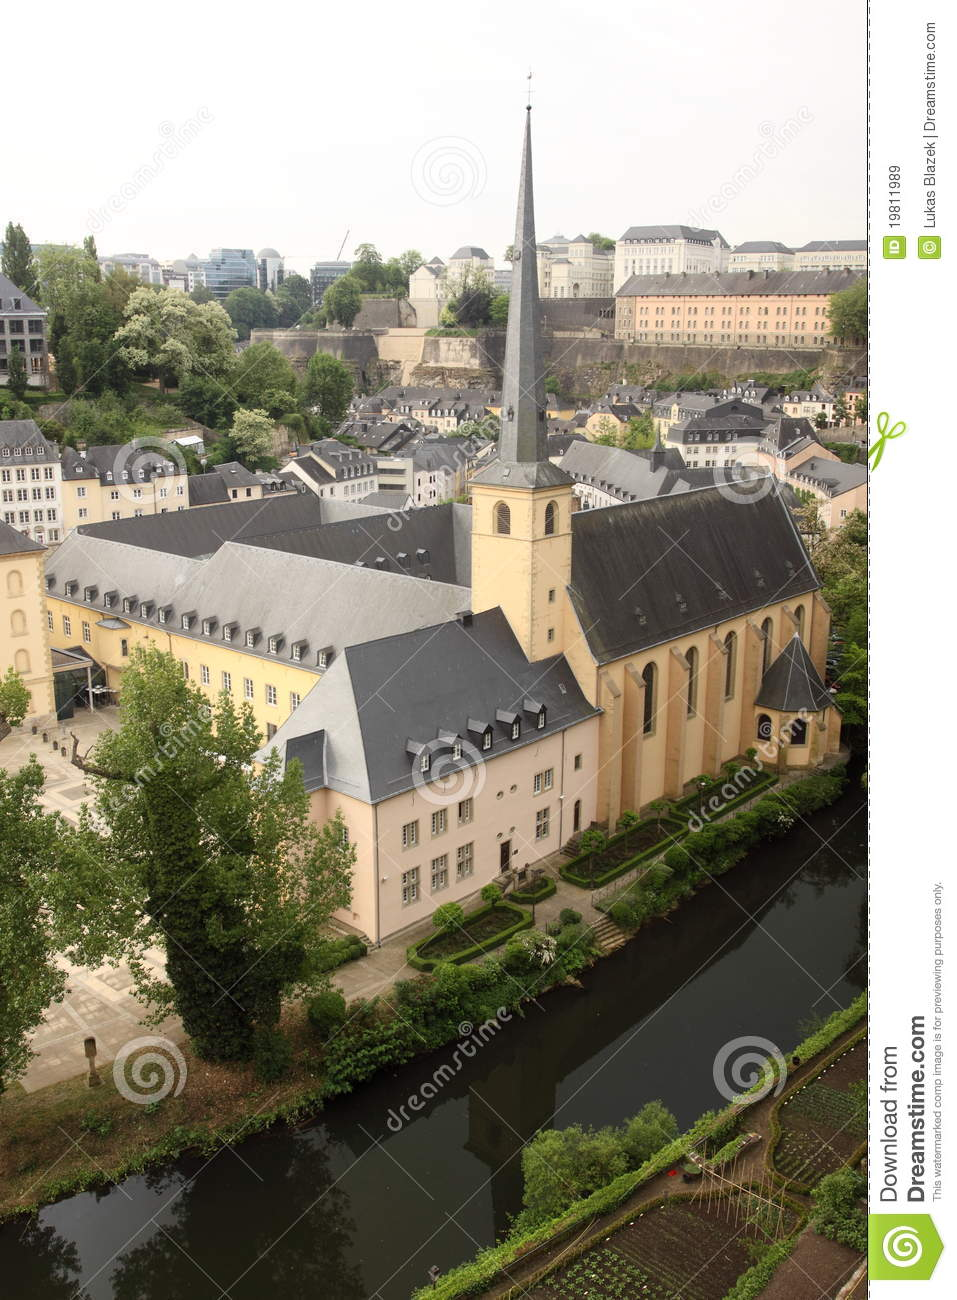 Luxembourg city - old monastery